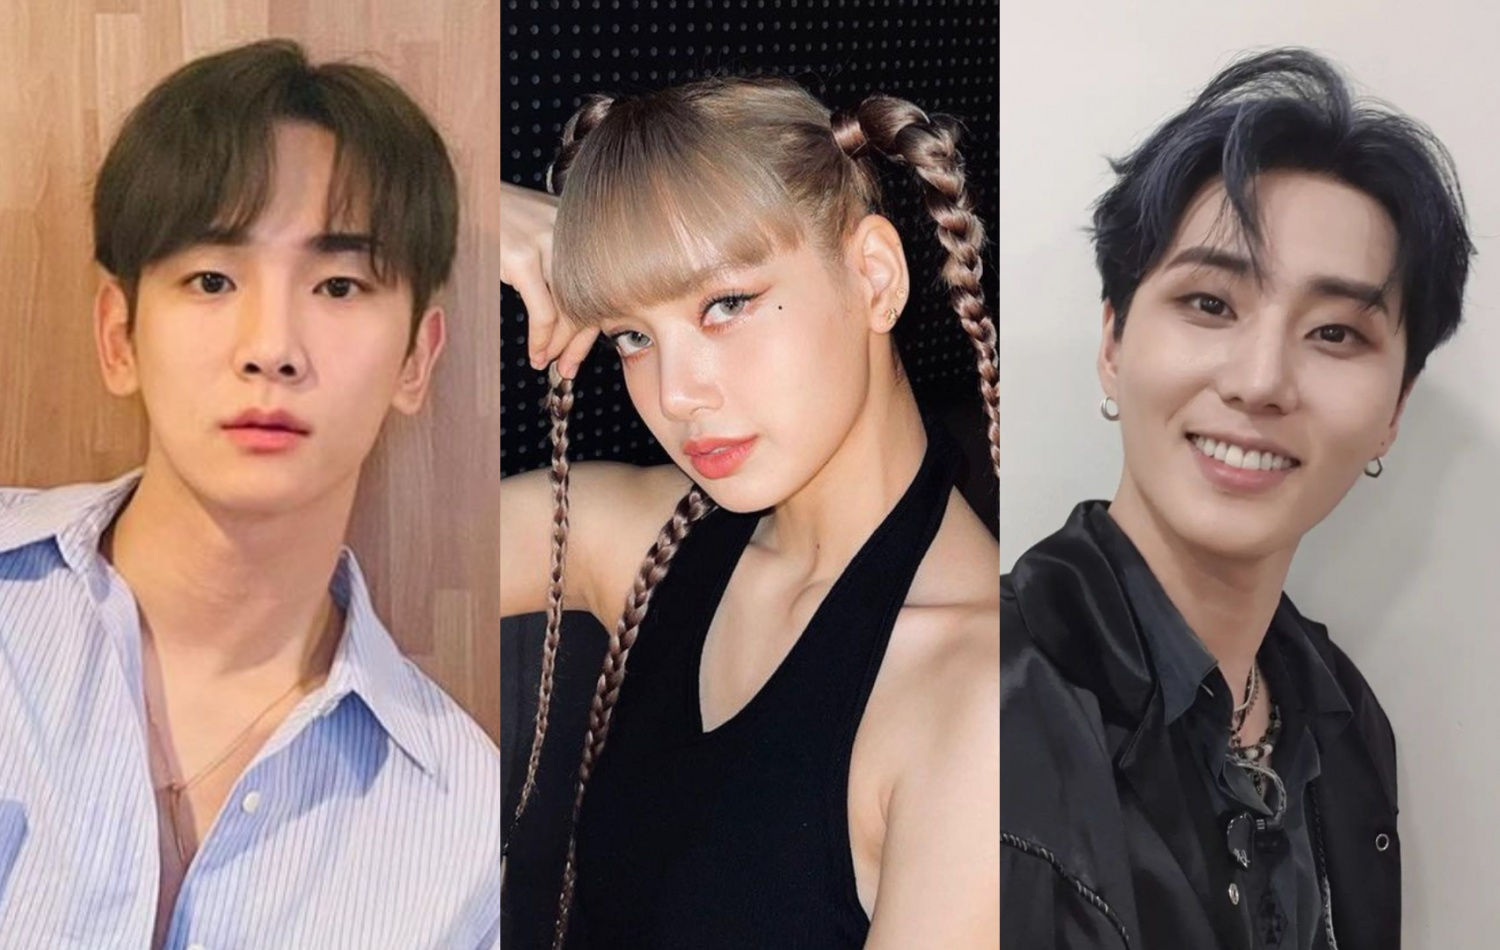 BLACKPINK Lisa, SHINee Key, DAY6 Young K & More: A Fierce Solo Battle between 2nd and 3rd Generation Idols - Who's Your Bet?